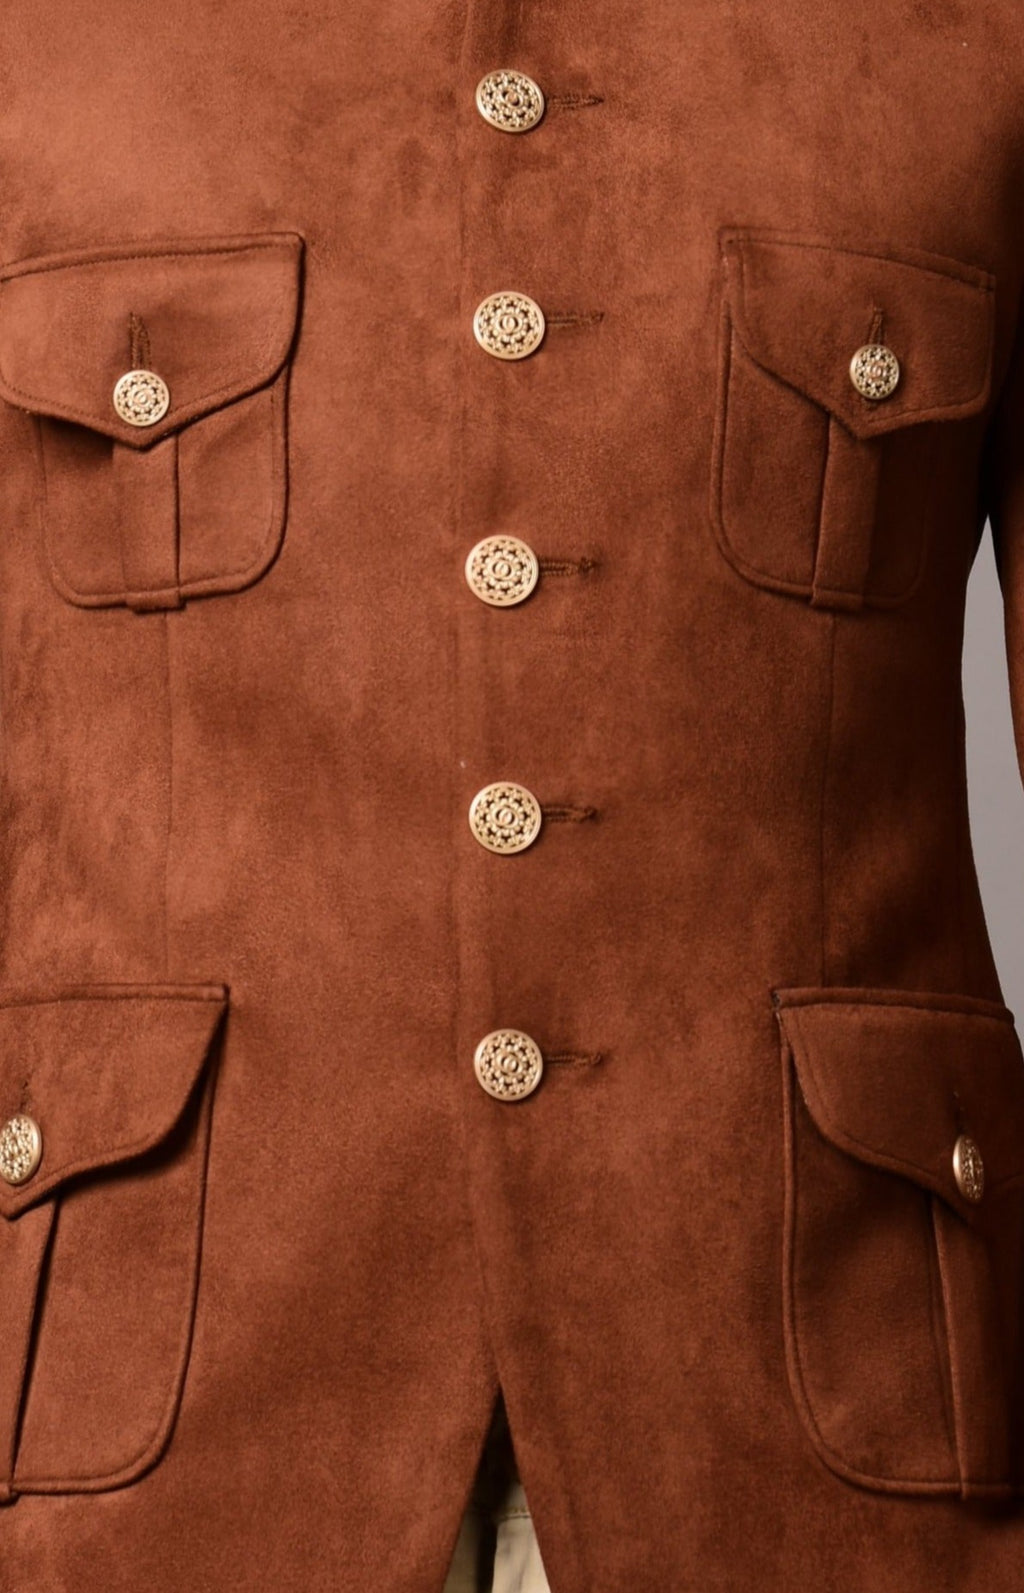 Camel Colour Suede Leather Hunting Bandhgala